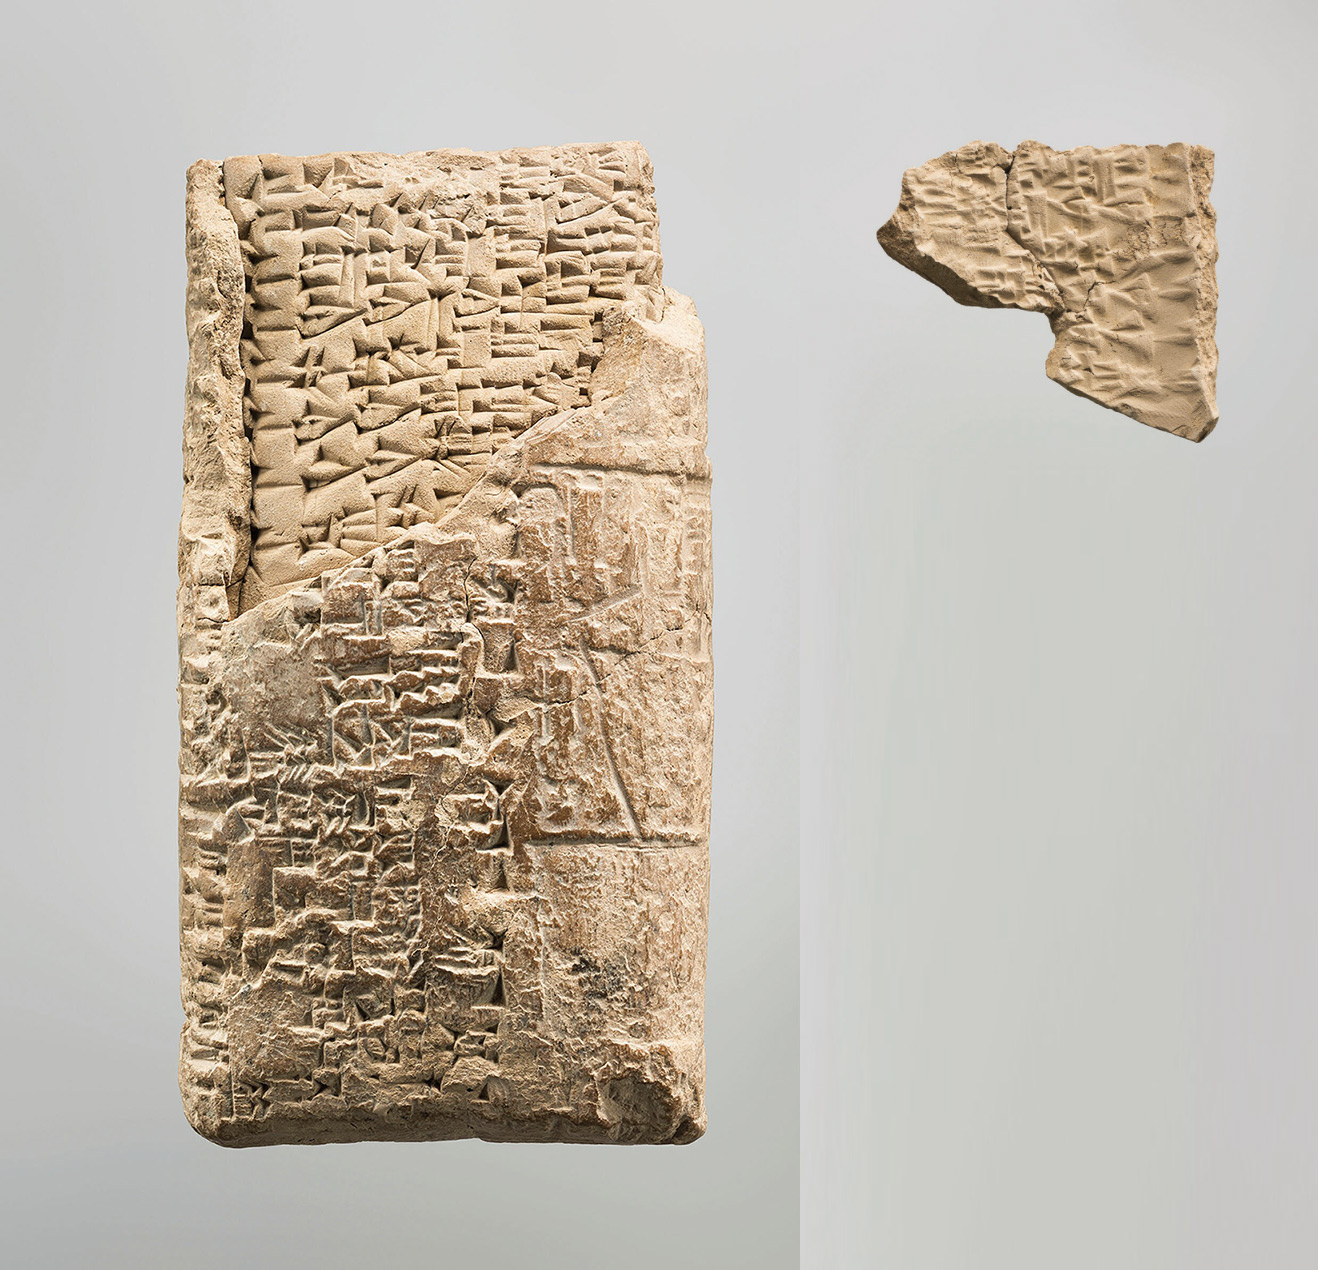 Whitish gray colored piece of clay in the shape of a rectangular envelope, with inscriptions etched into the clay and a corner broken off